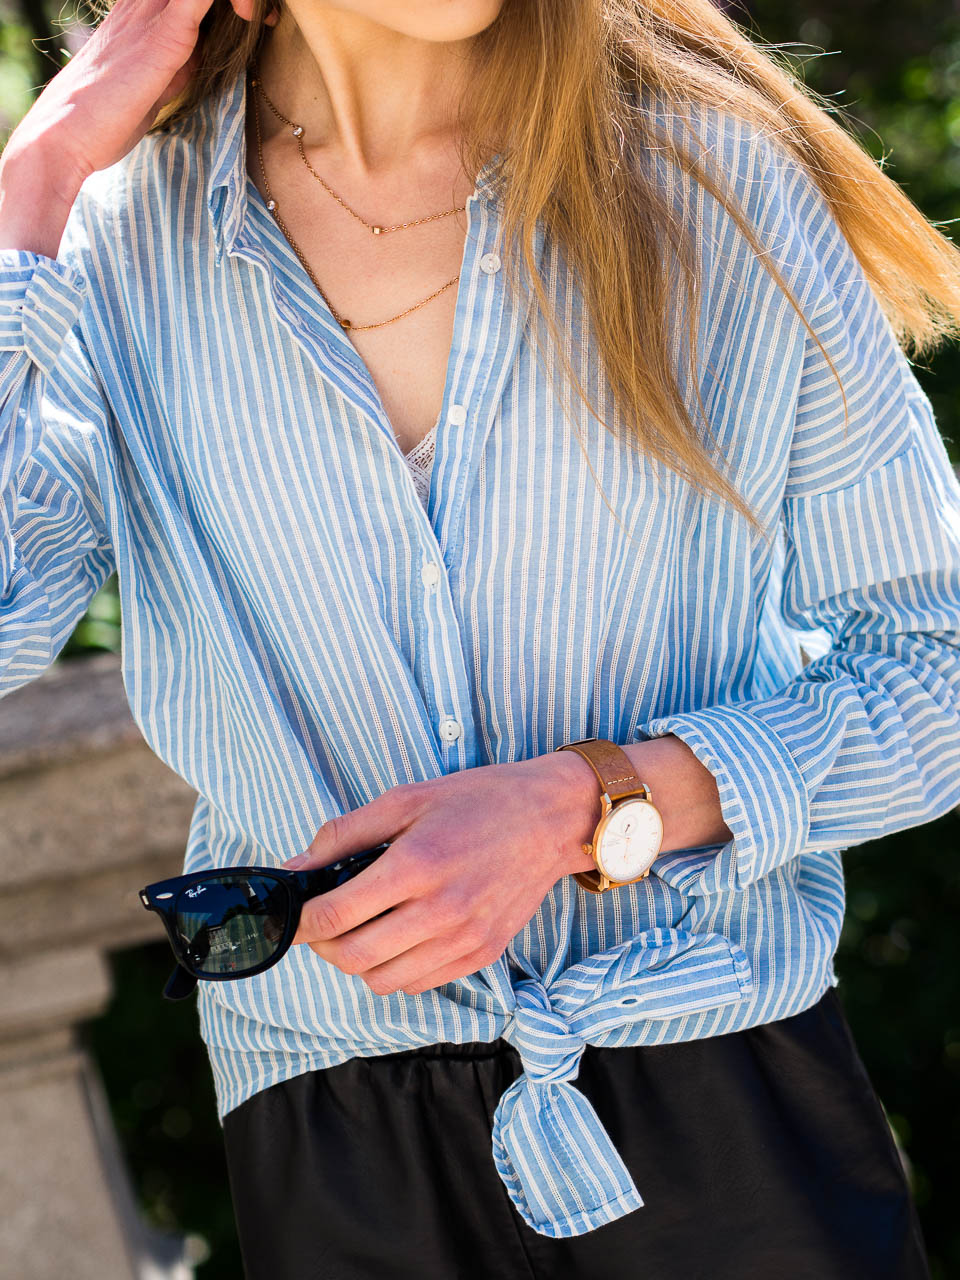 summer-outfit-details-blue-and-white-striped-shirt